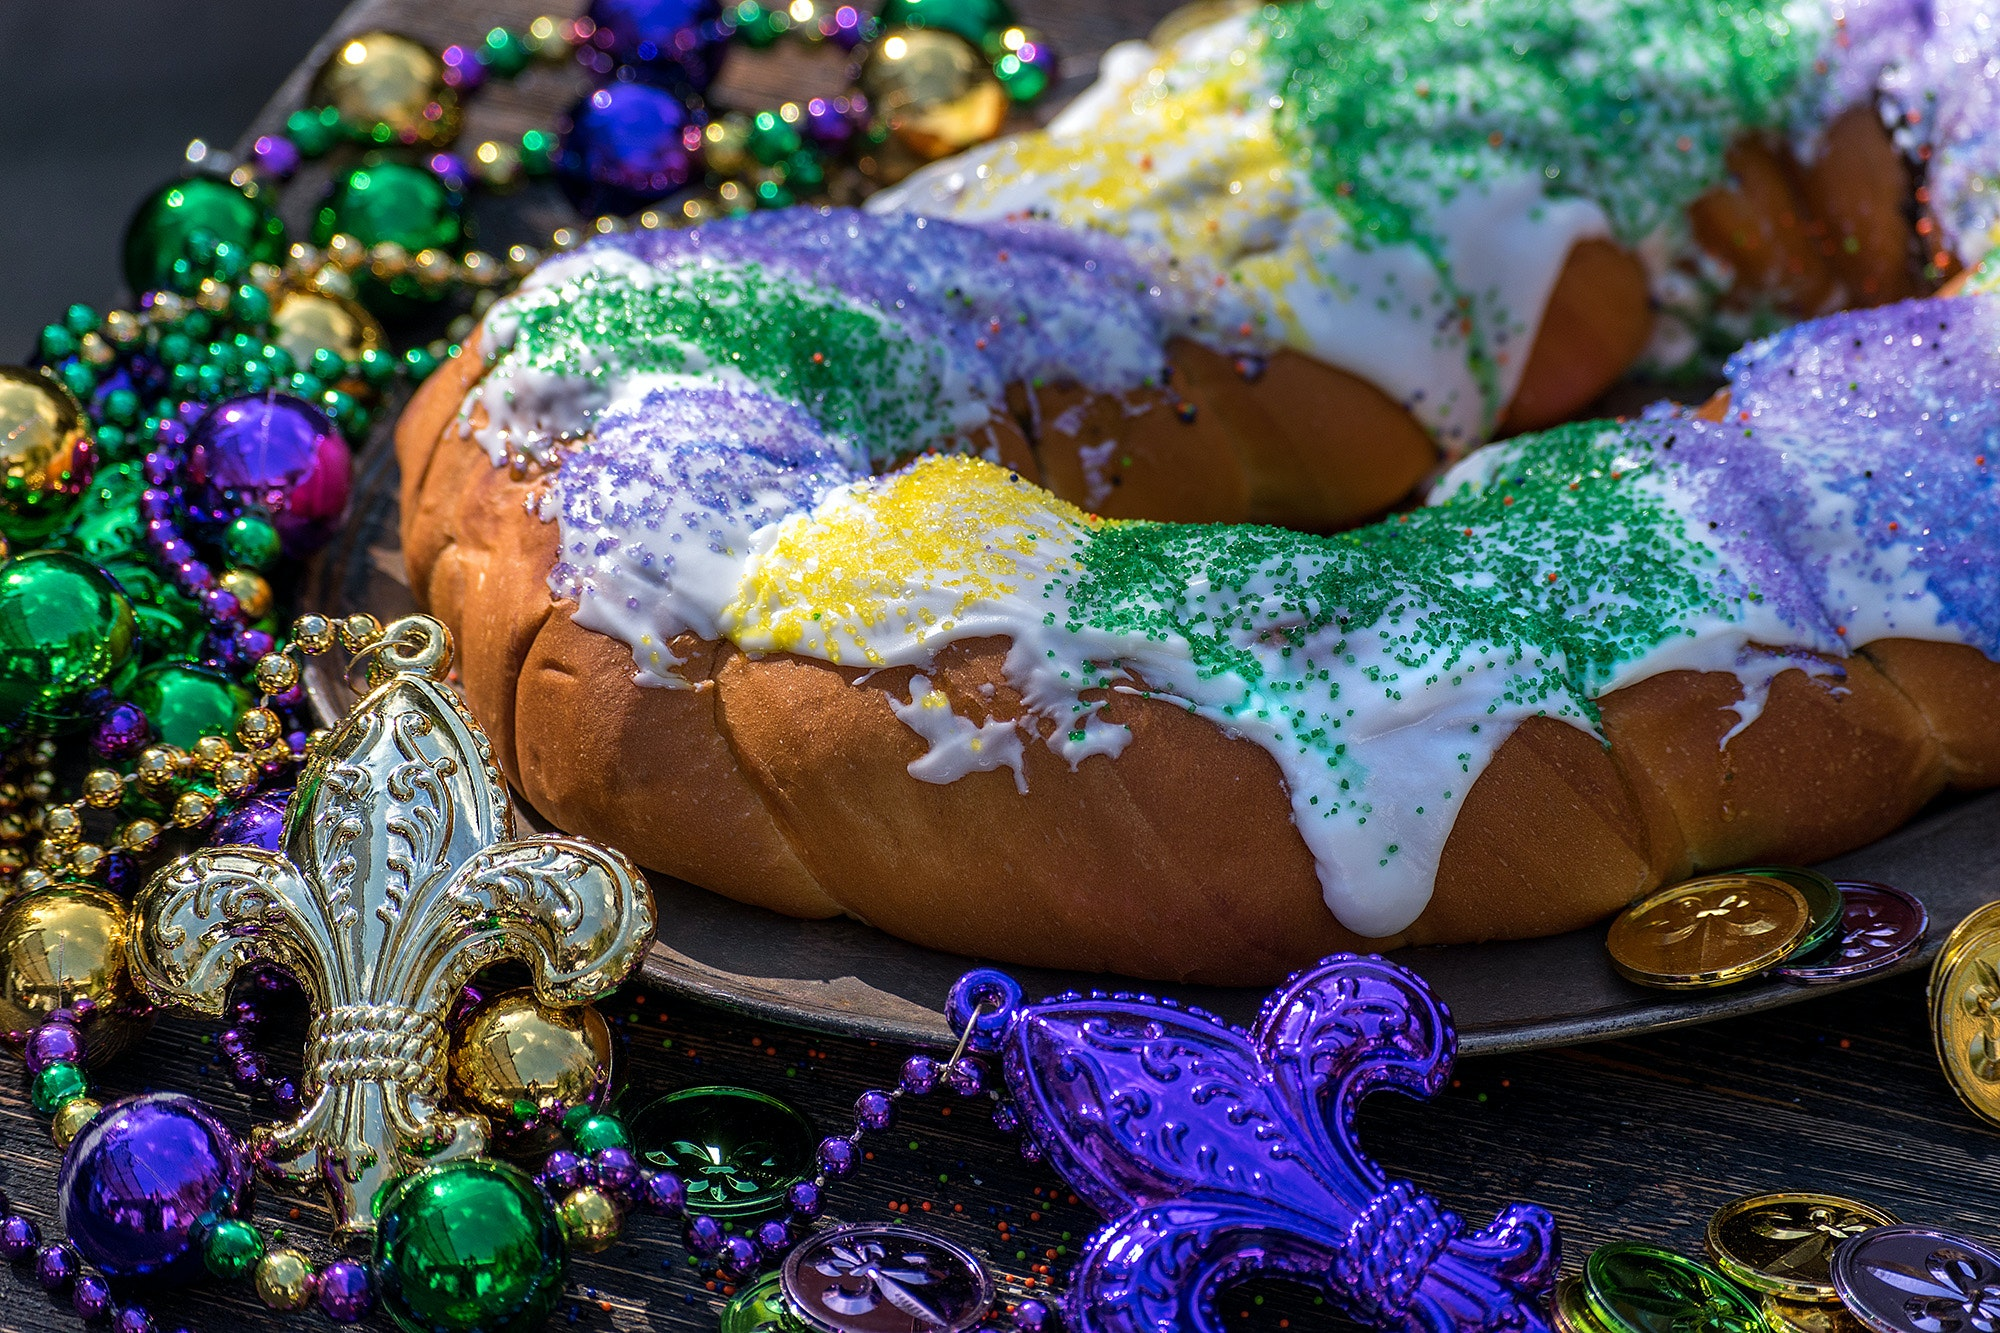 A traditional New Orleans–style king cake